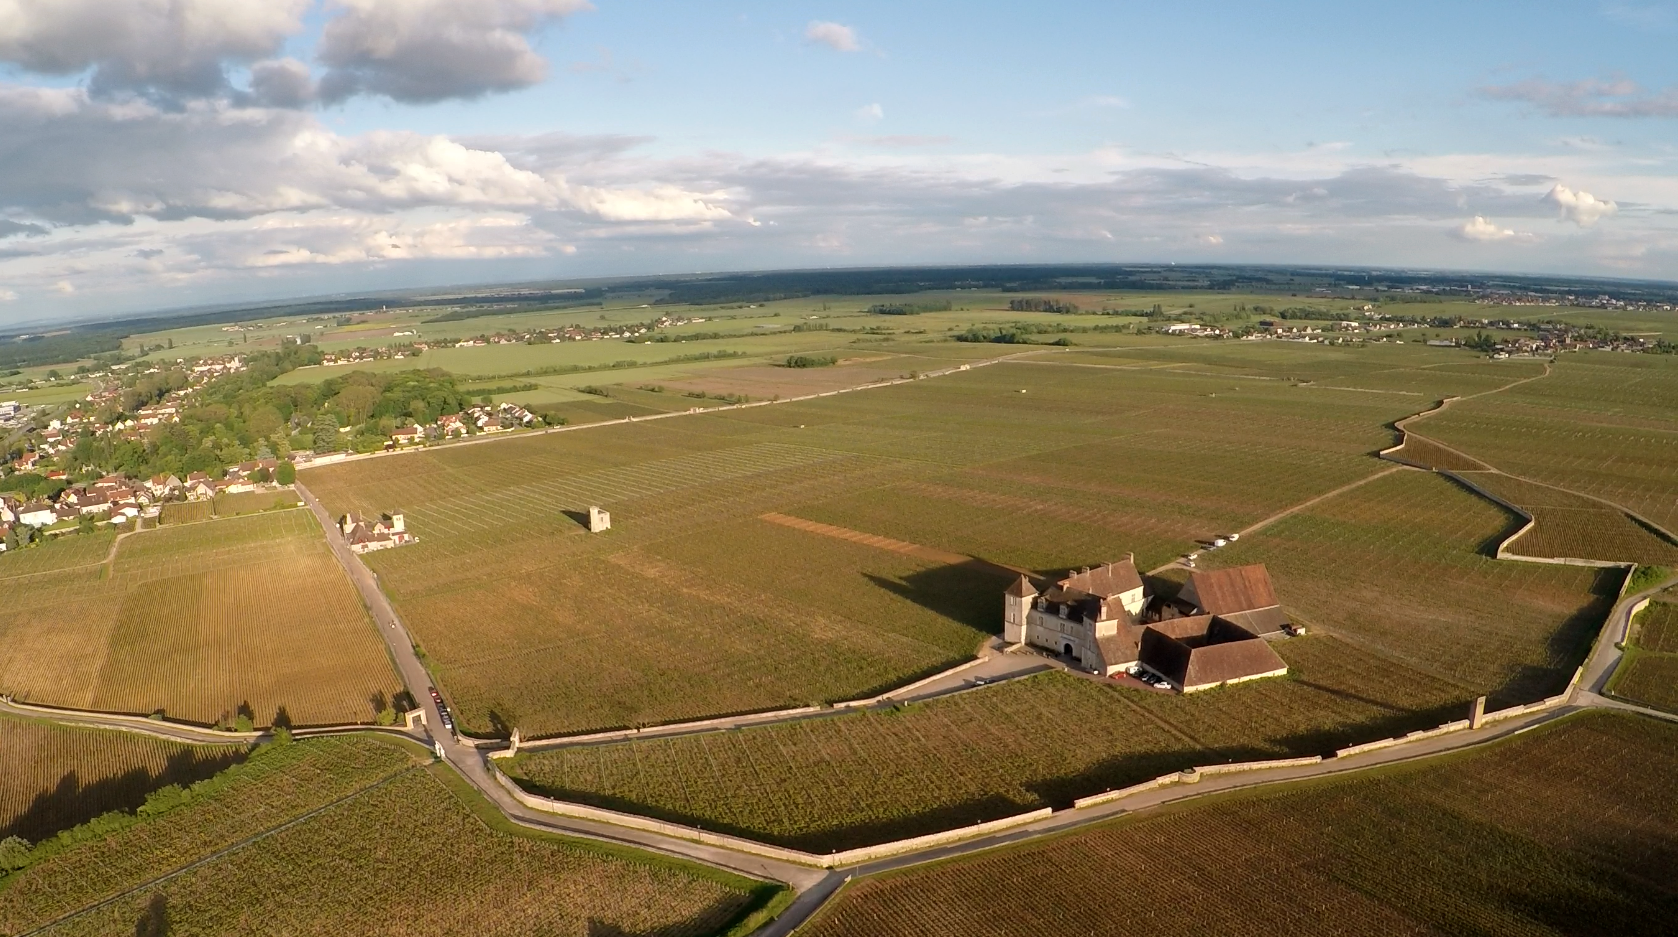 A still from the drone footage we shot last month, high over the  Clos Vougeot